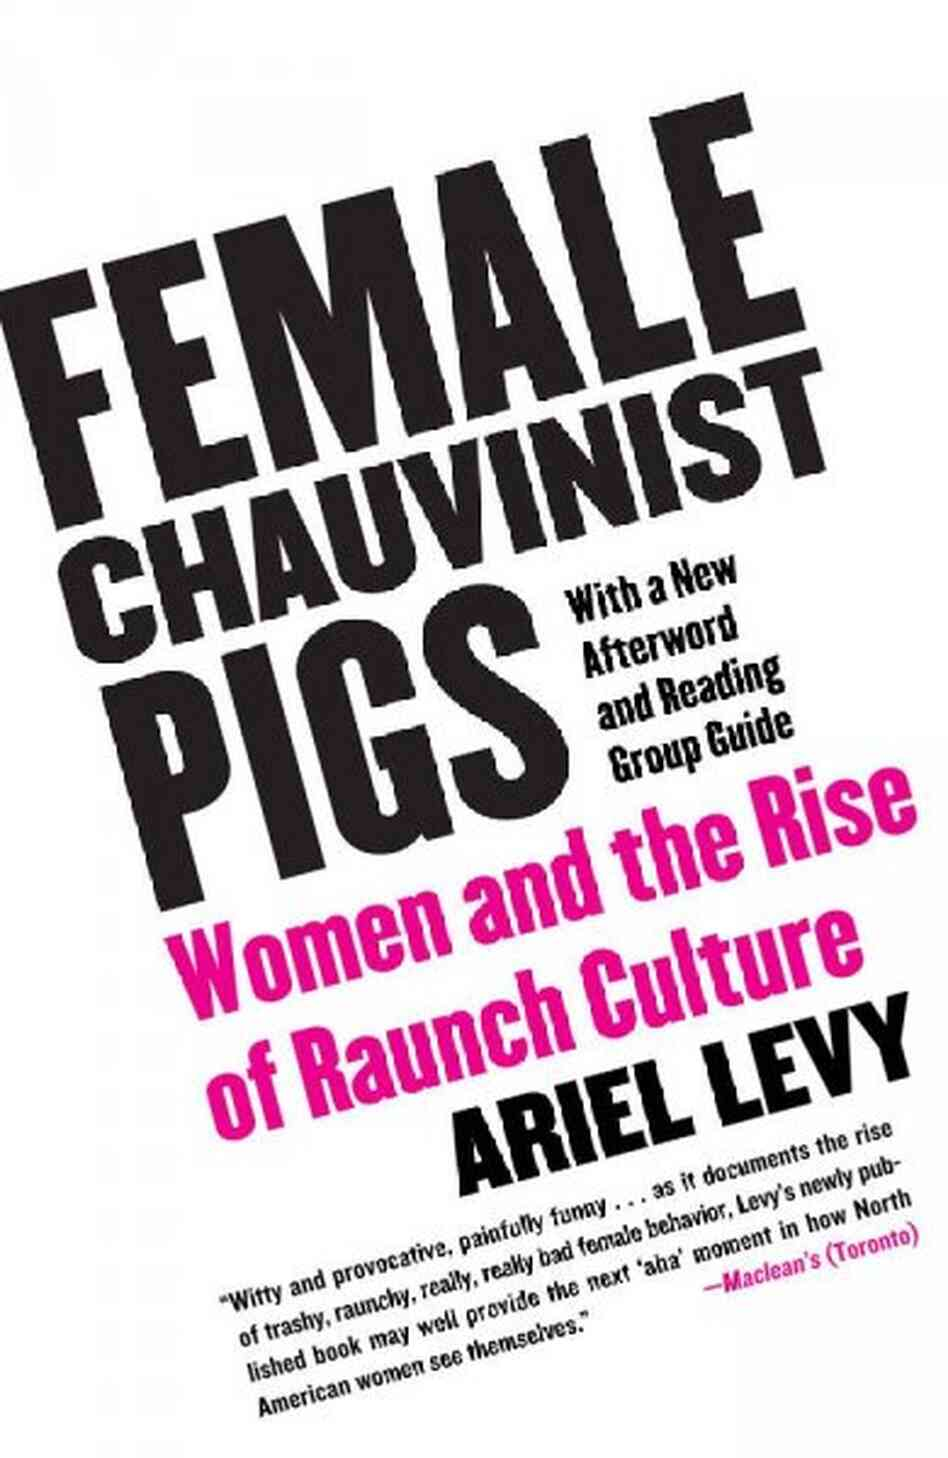 female chauvinist pigs Rating: did you know barbie dolls were modelled after blonde german sex dolls called bild lilli disturbing to know i played with a sex doll as a child o_o chapter one: raunch culture.